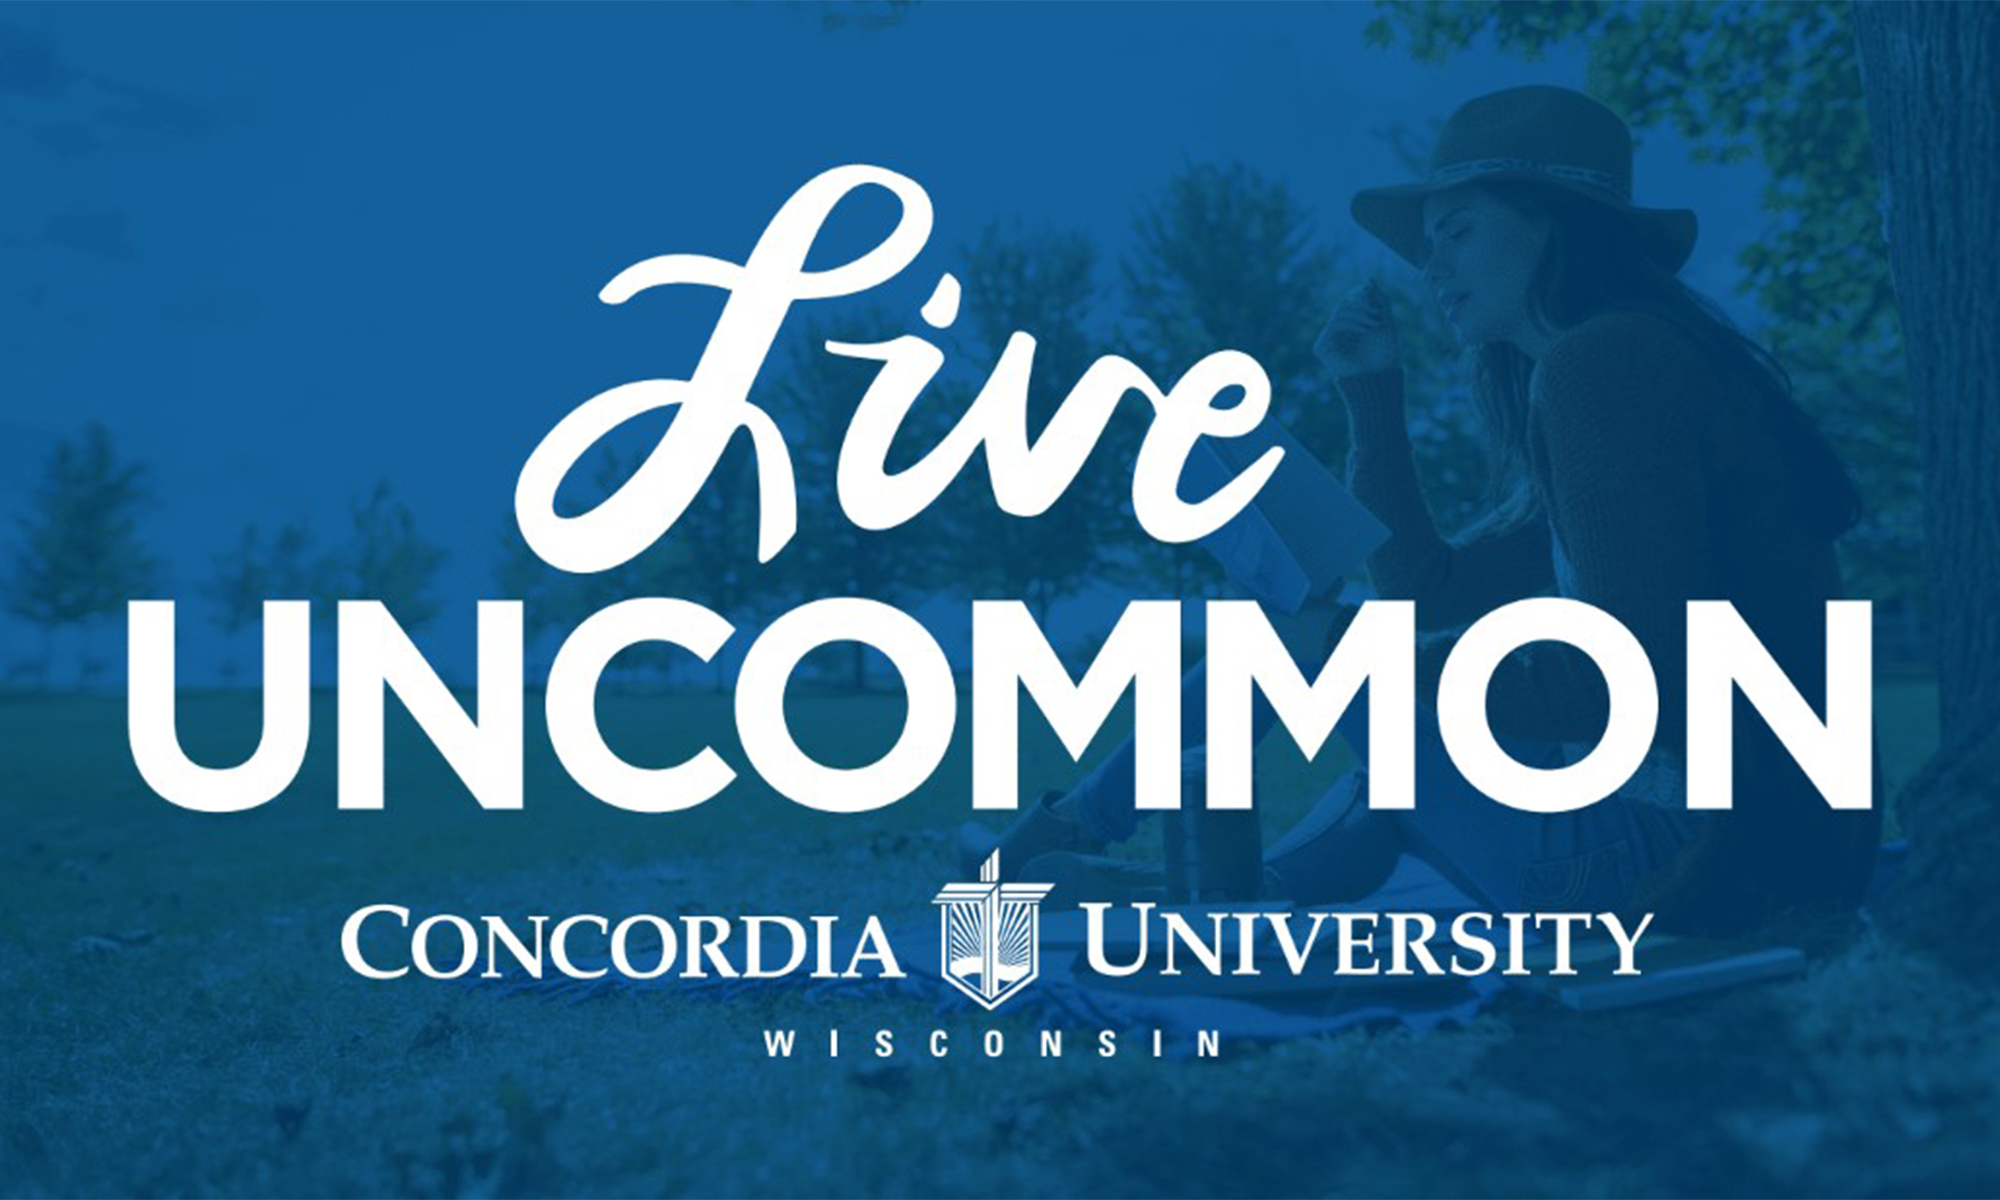 Concordia uniquely offers scholarship to Lutherans.